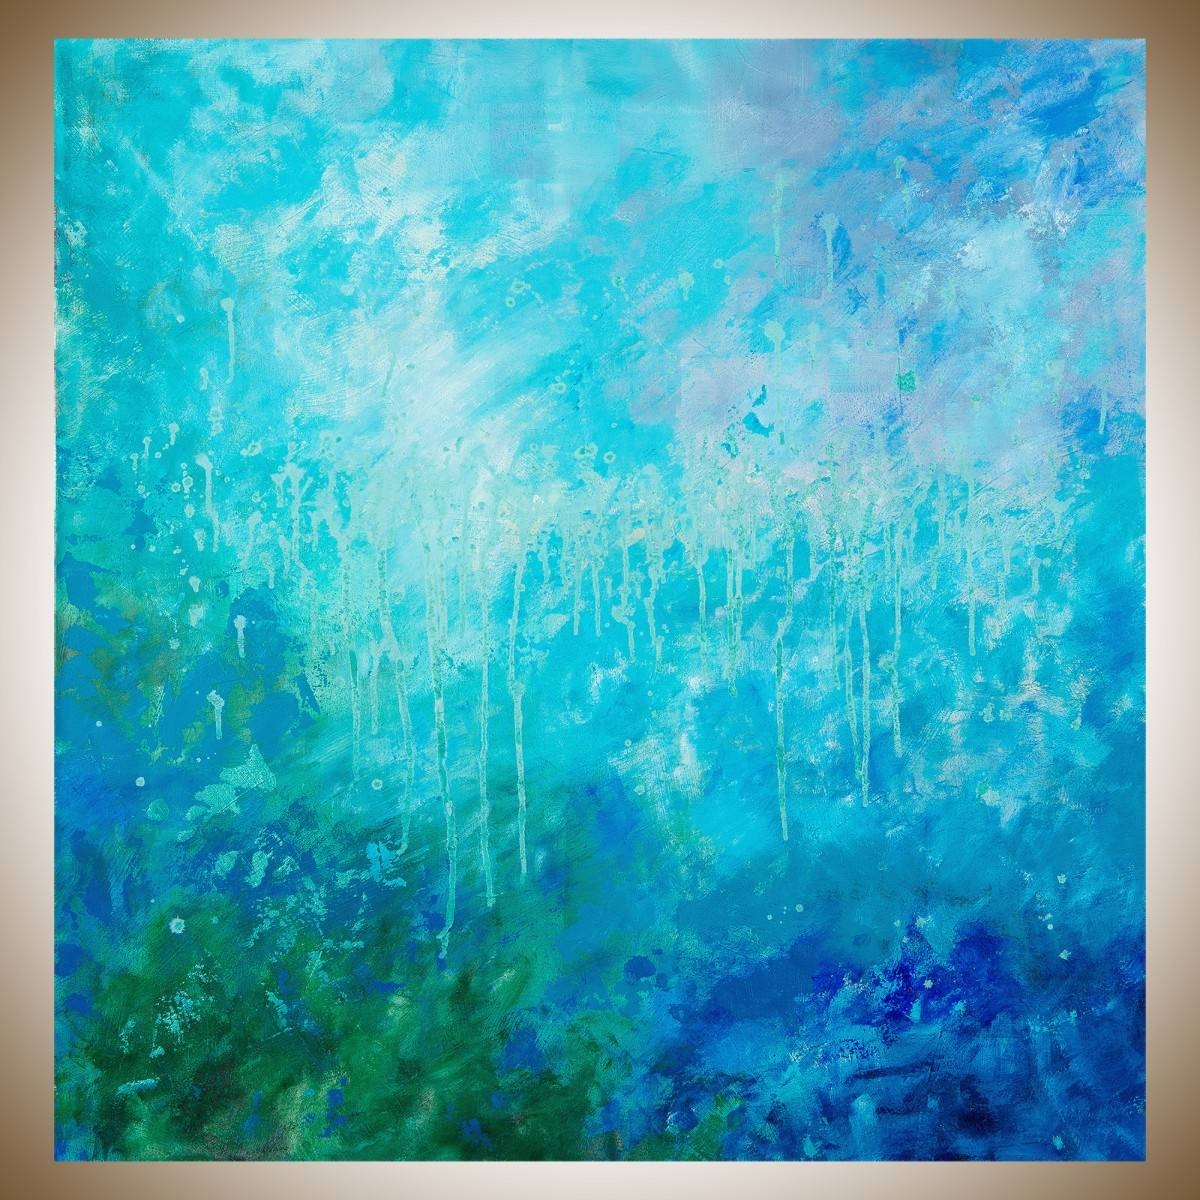 "November Showerqiqigallery 40""x40"" Un Stretched Canvas Inside Most Recent Blue And Green Wall Art (View 3 of 20)"